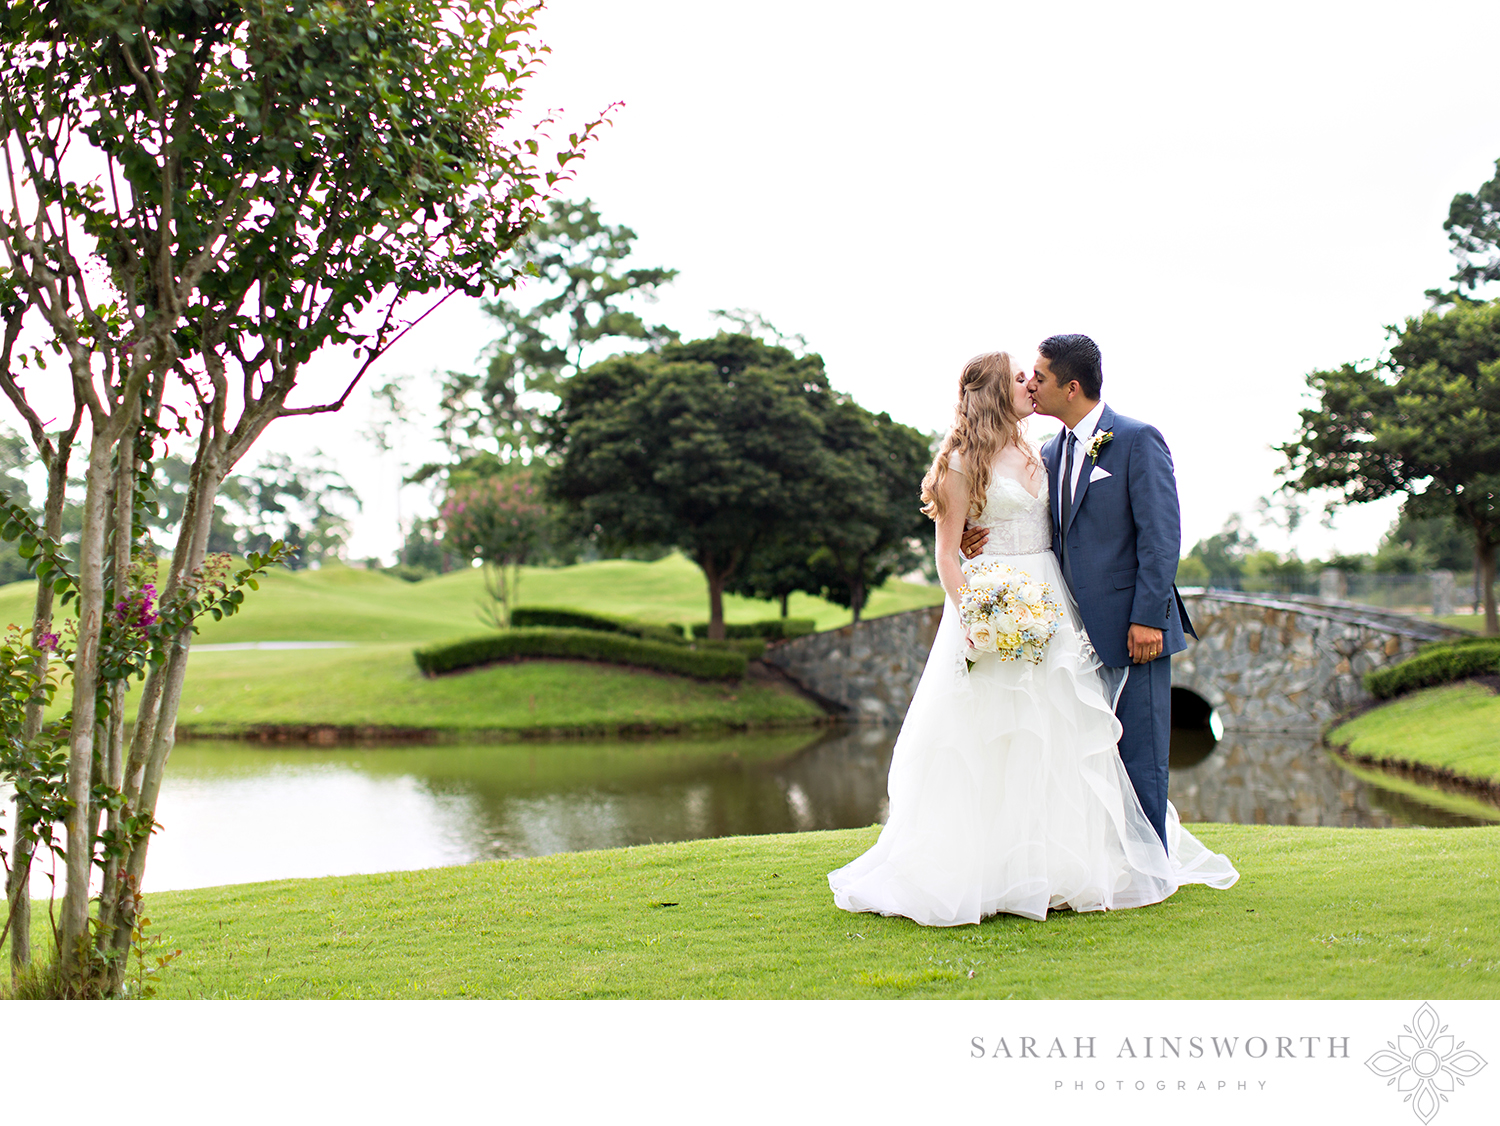 northgate-country-club-houston-country-club-weddings-upscale-country-club-wedding_01.jpg